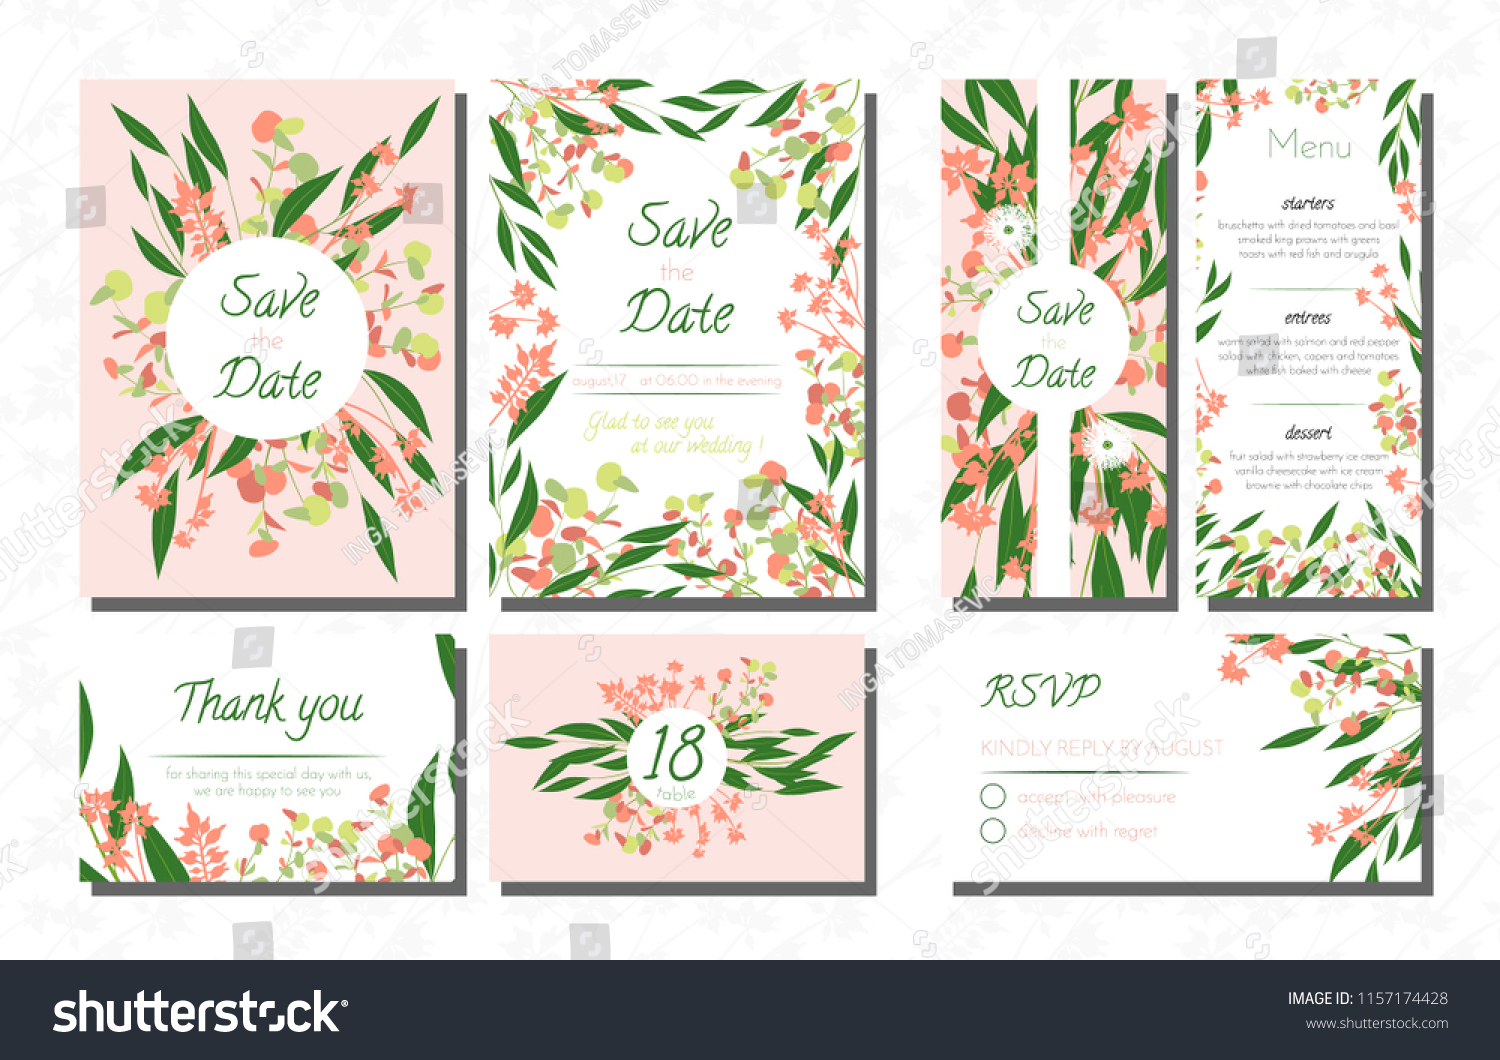 Wedding Card Templates Set With Eucalyptus Vector Decorative Invitation Leaves Floral And Herbs: Eucalytus Garland Wedding Place Card Templates At Websimilar.org